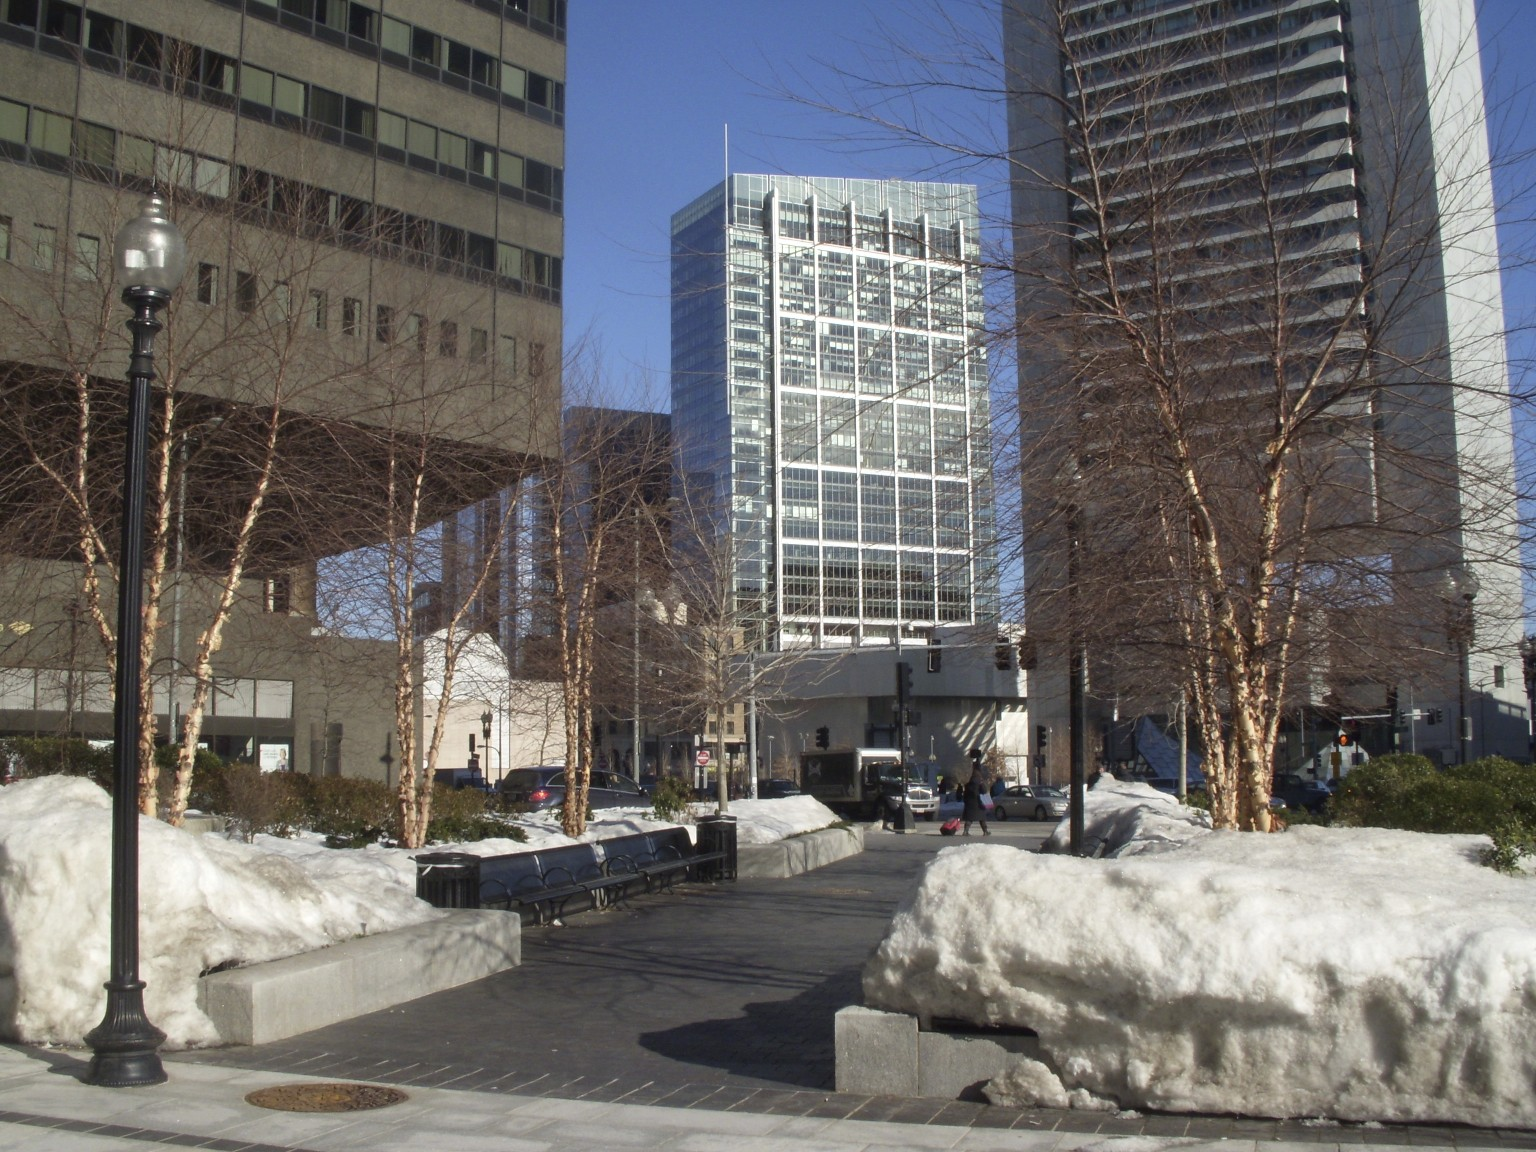 picture of Birch trees growing in Boston's Big Dig open space setting